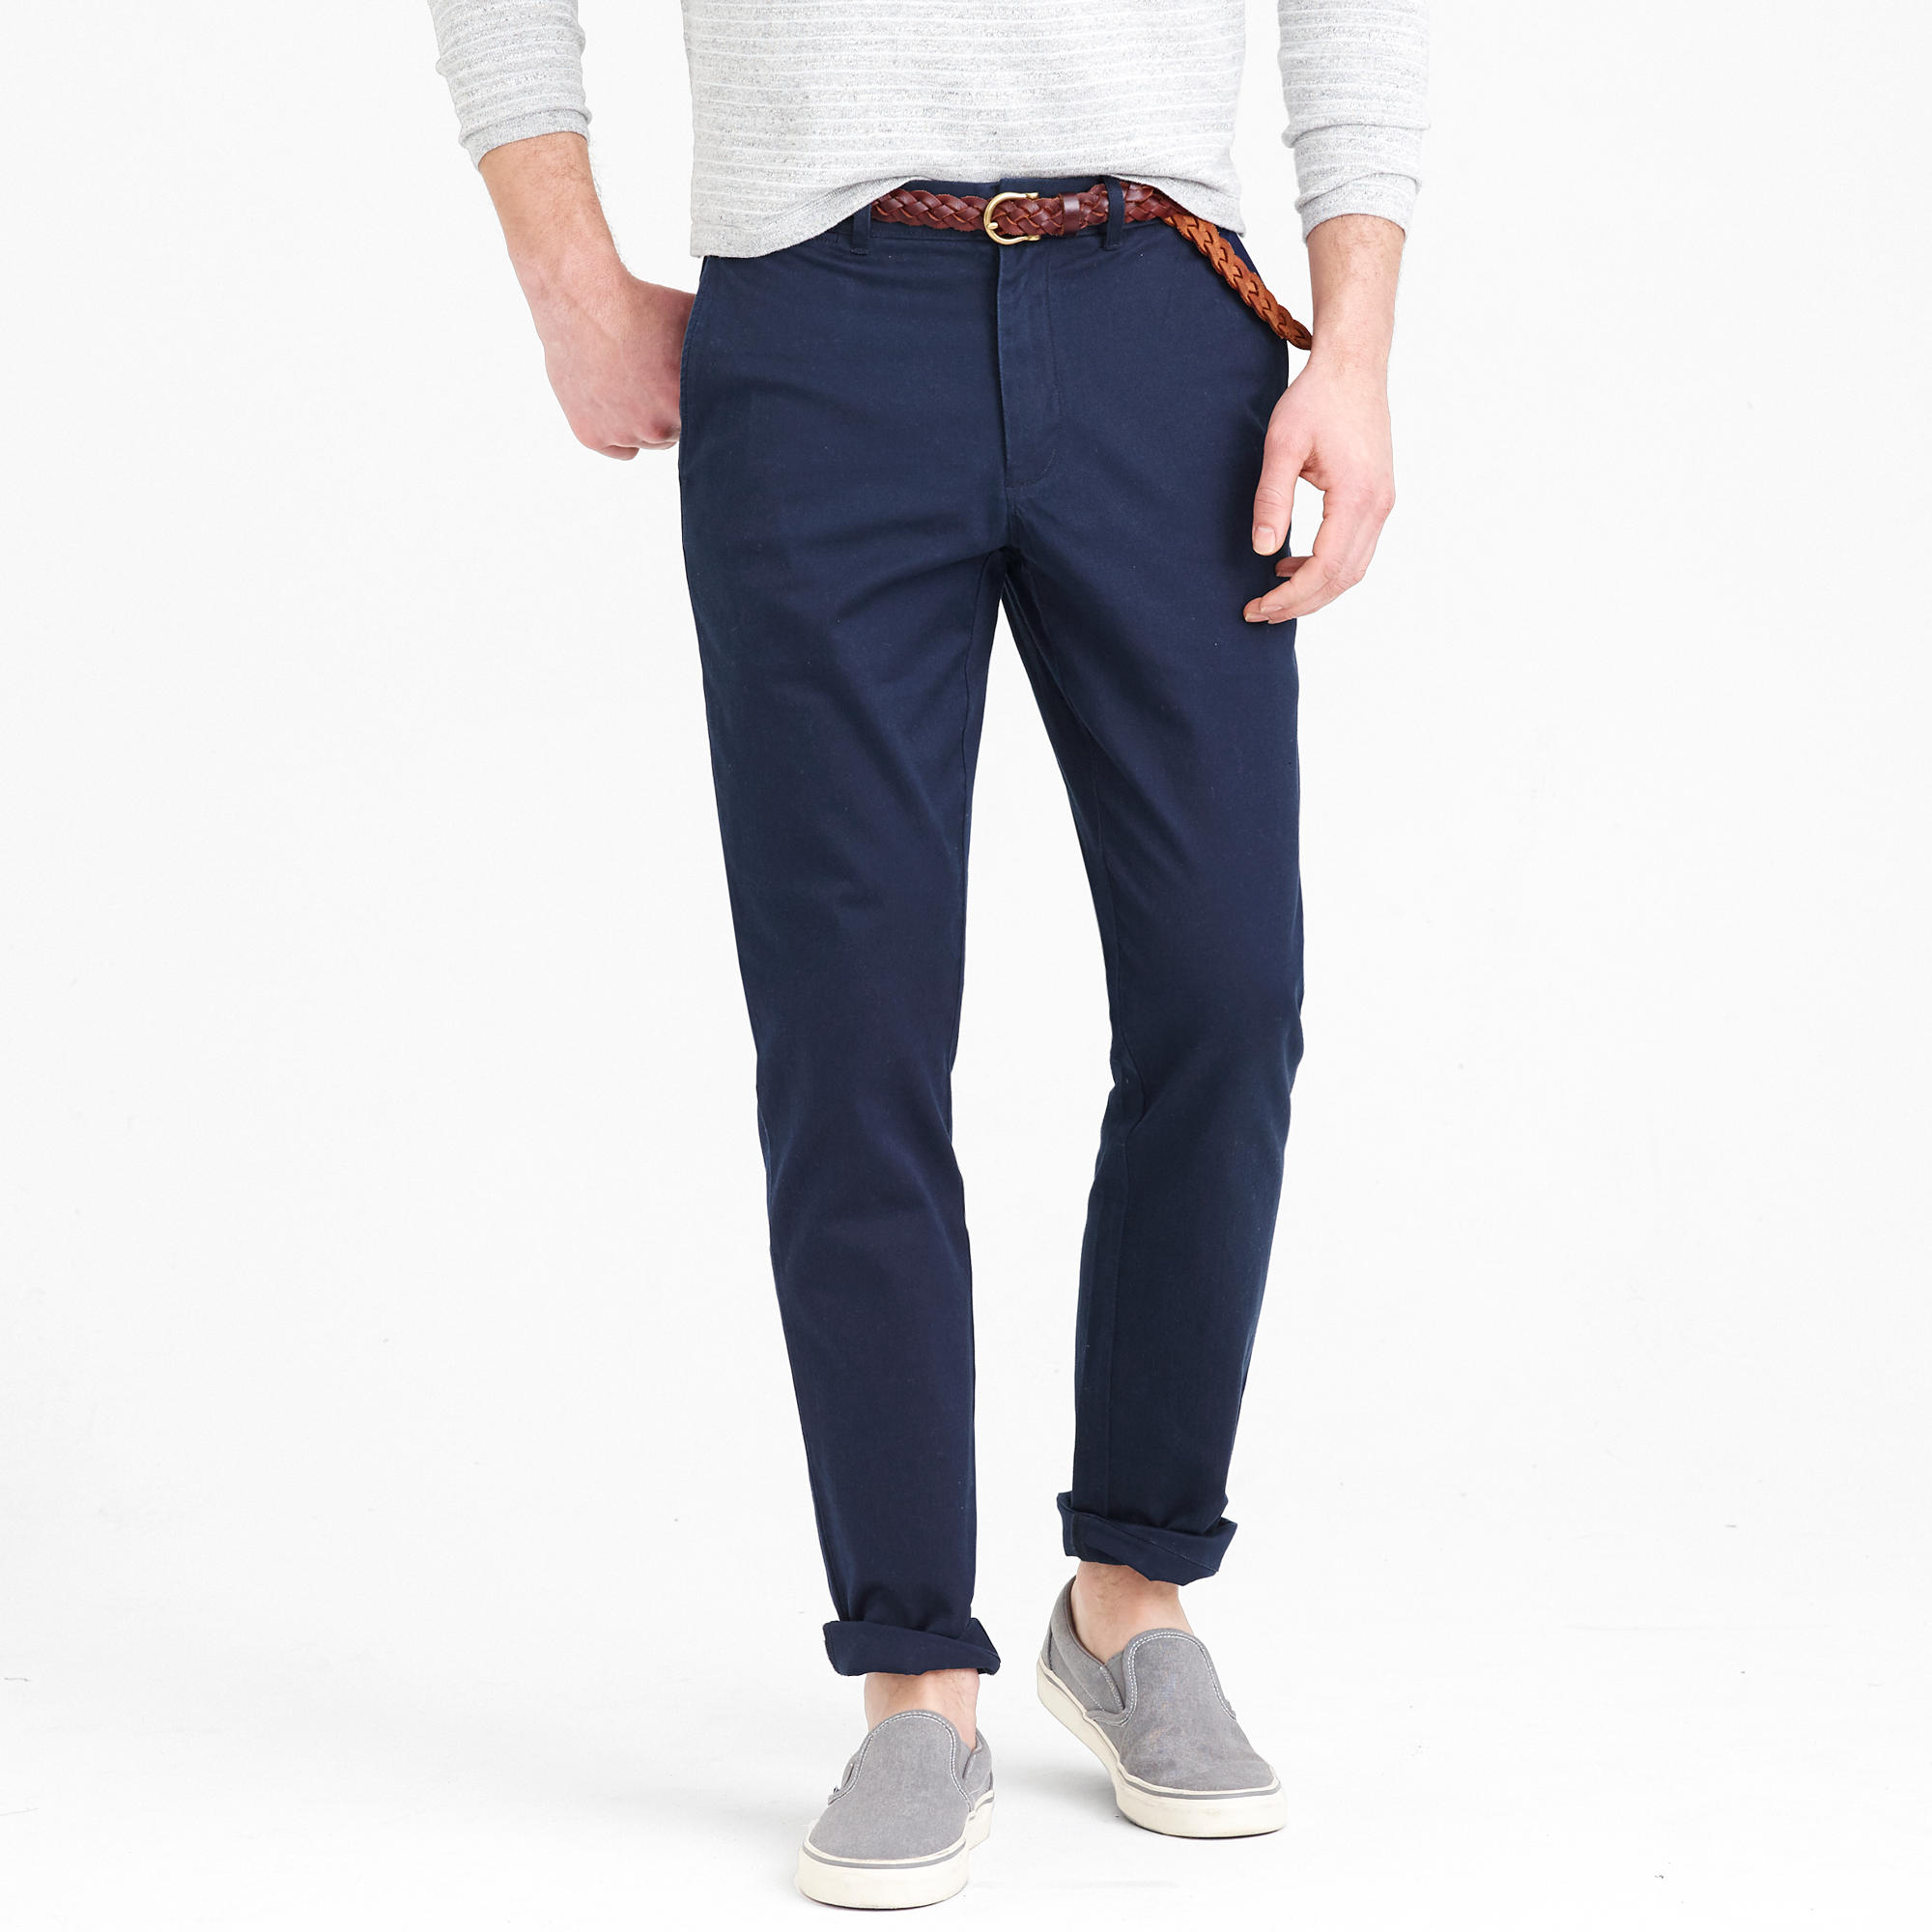 BLUE CHINOS navy blue chino AVCQMWG